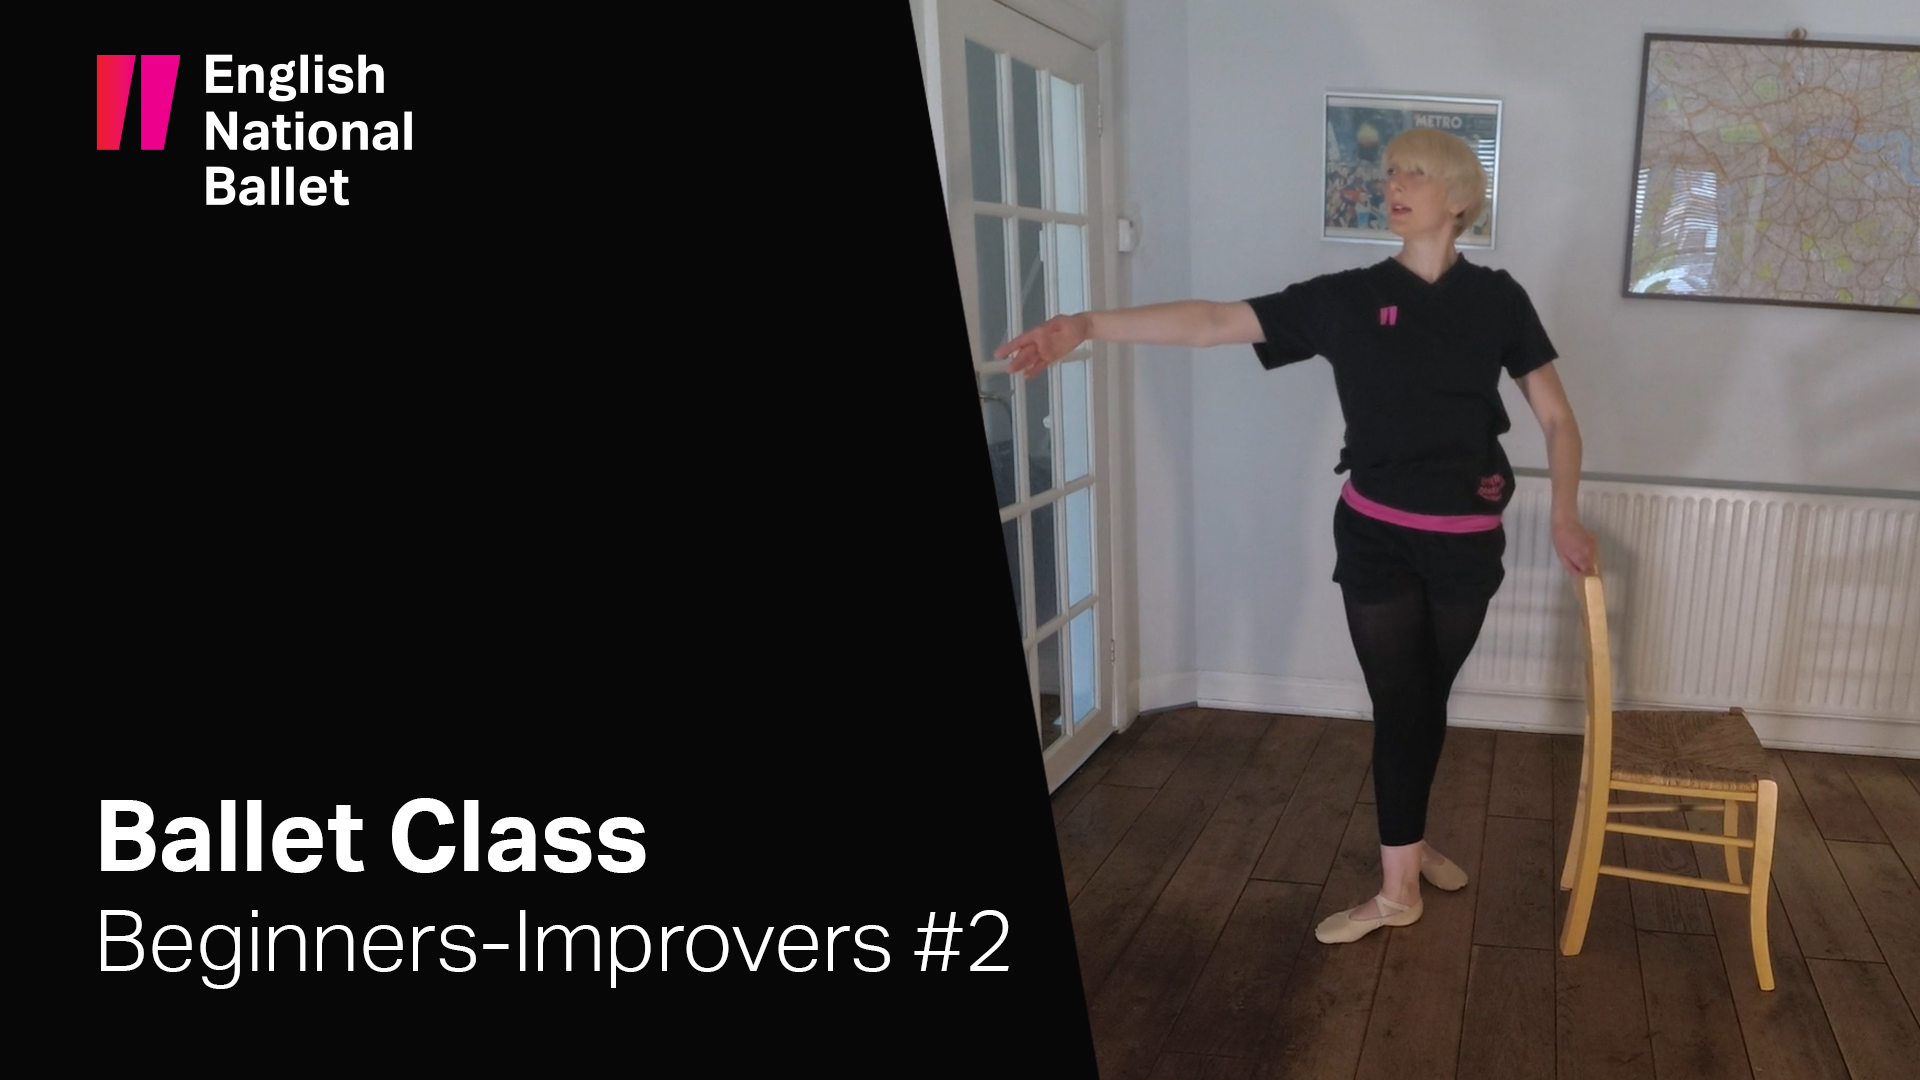 Beginners-Improvers Ballet Class #2: ENB at Home | English National Ballet